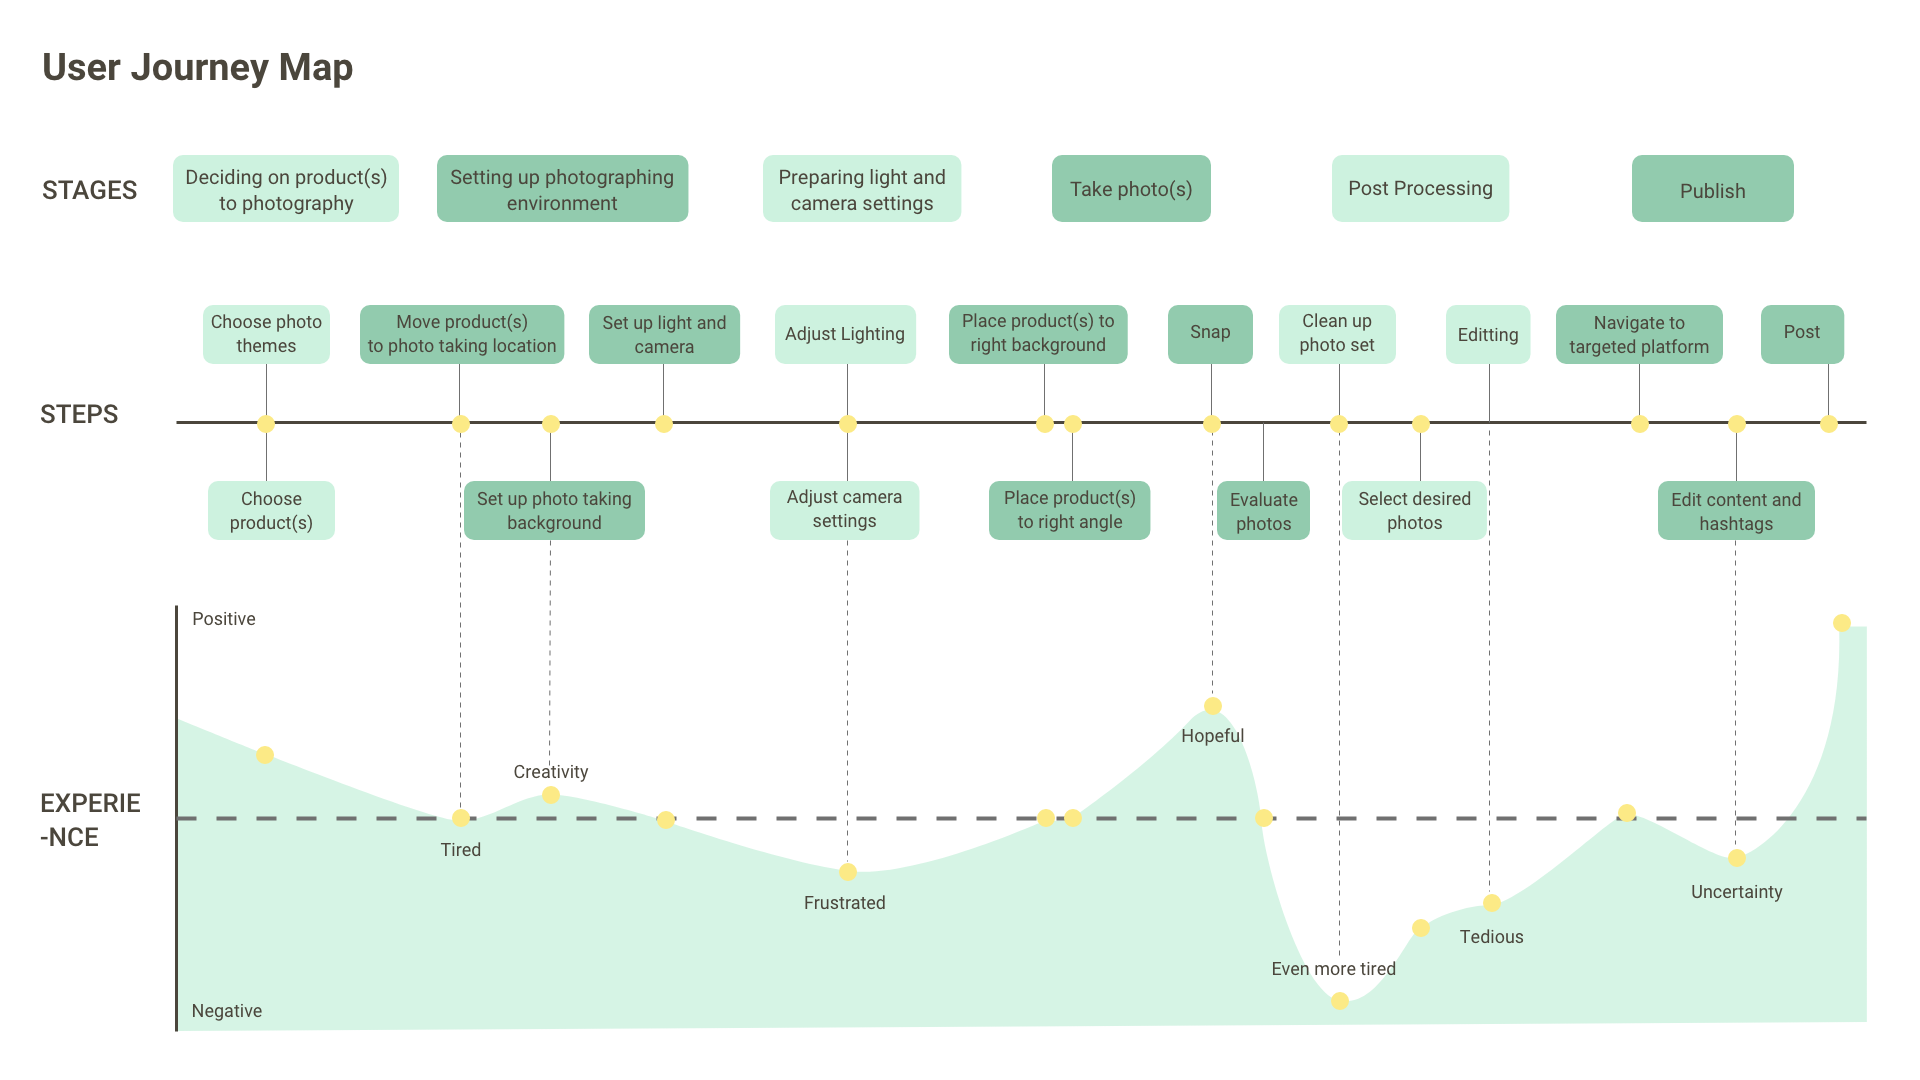 Journey map of an artist's process of marketing their work